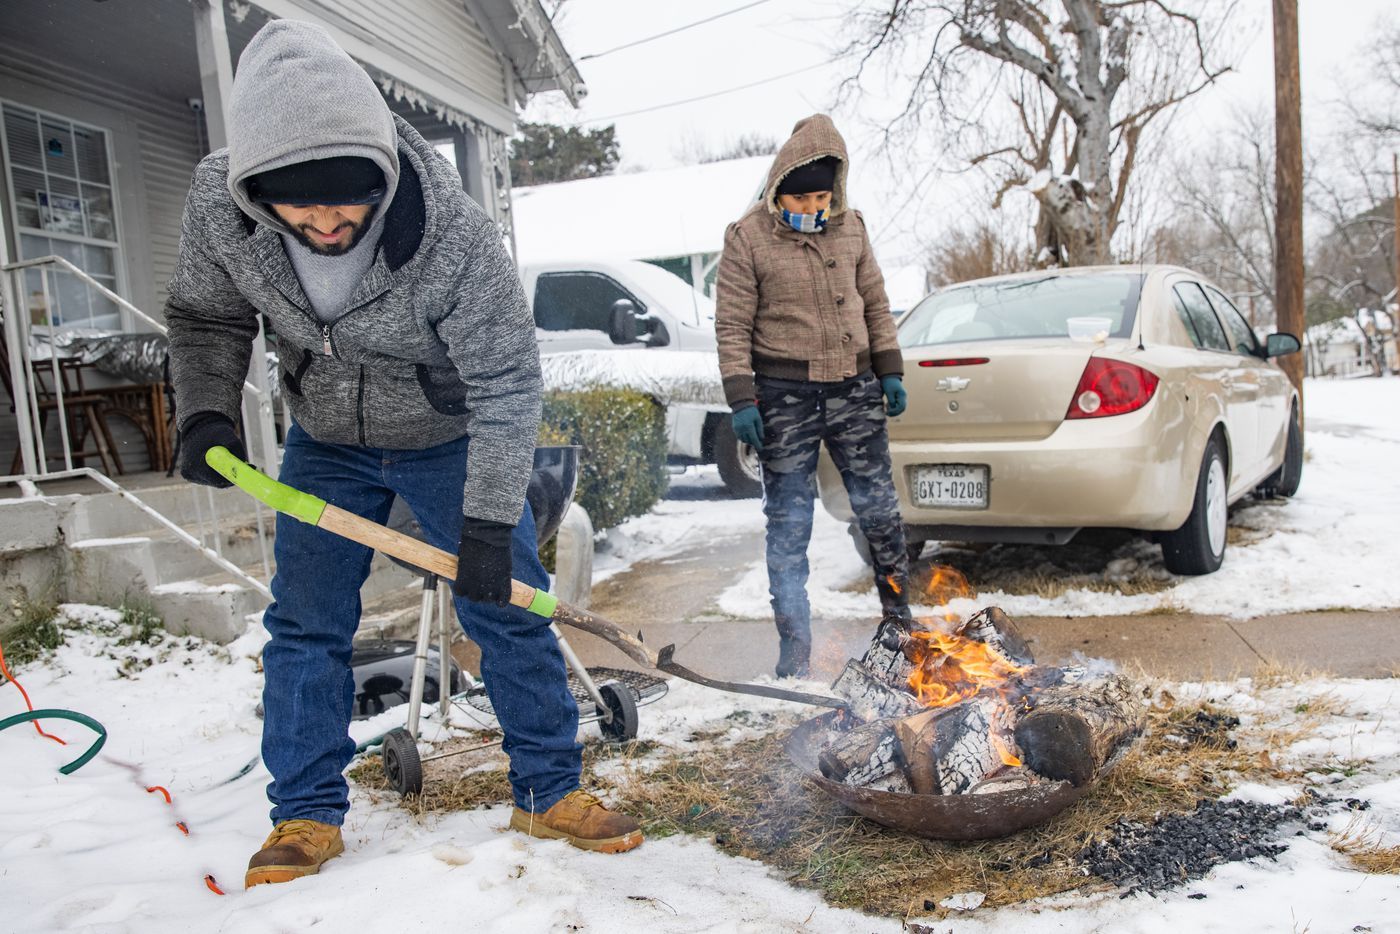 Leonel Solis (left) and Estefani Garcia get ready to cook outside of their home in East Dallas on Wednesday, Feb. 17, 2021. The couple, who lost power on Sunday, have been using electricity from a neighbor's generator and heat from their car to stay warm.